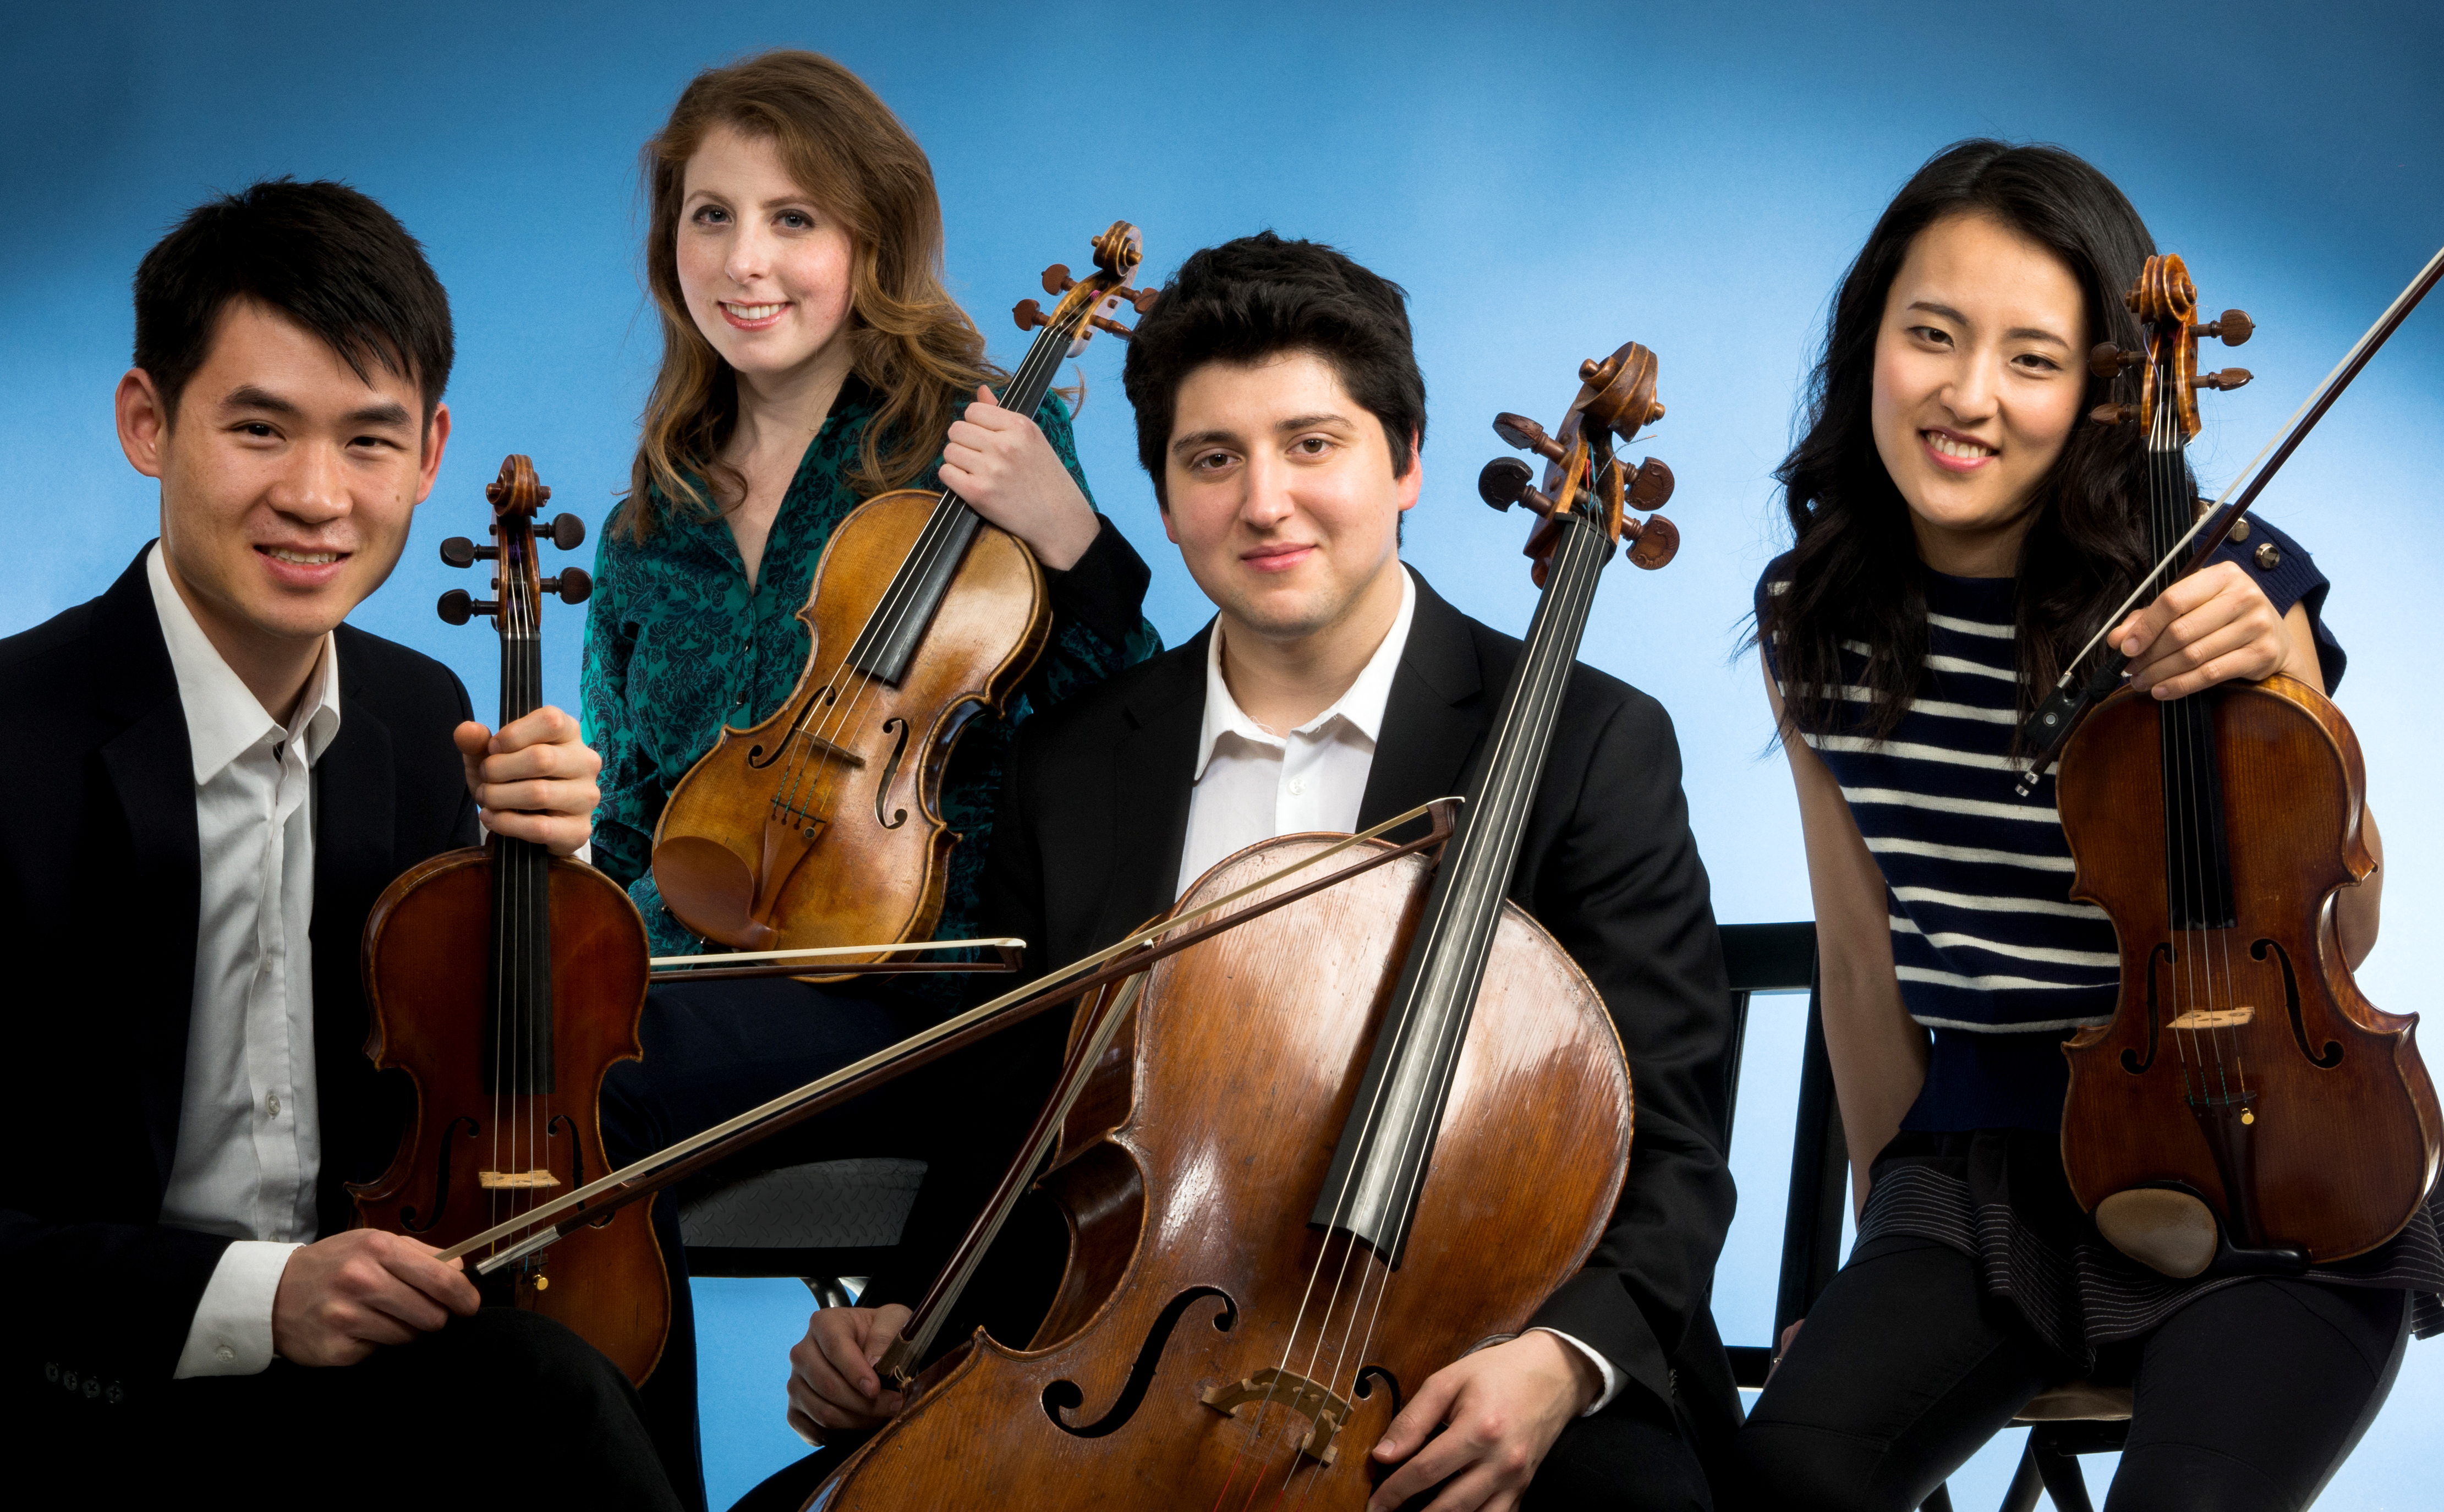 + October 4, 2018: Omer Quartet +